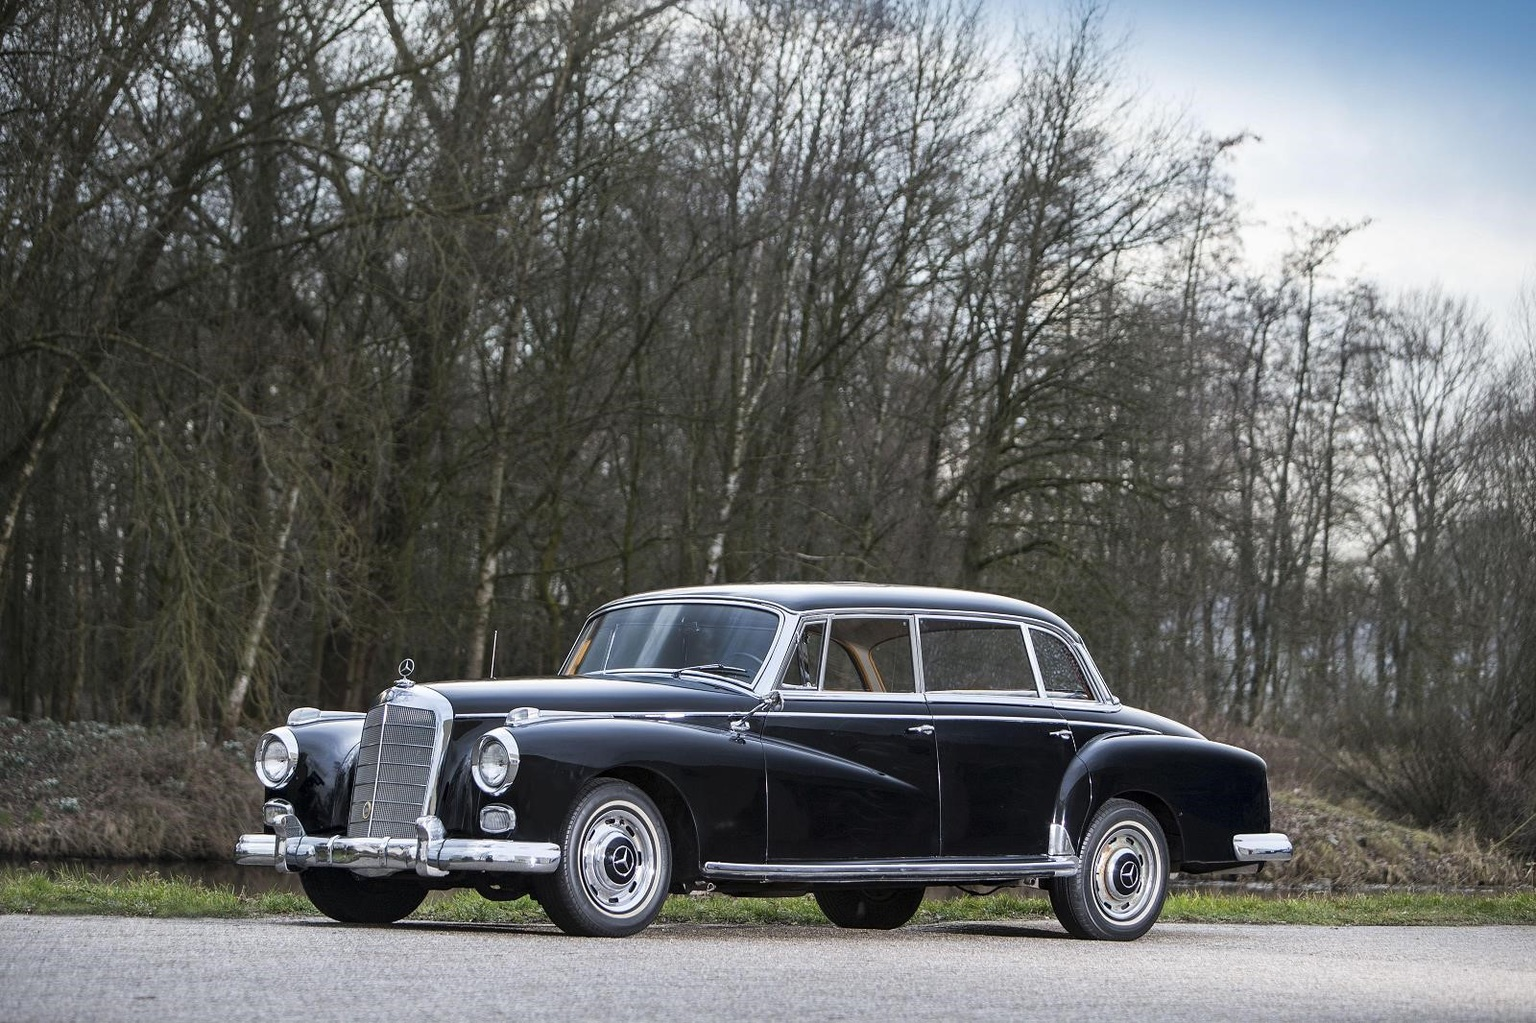 The Mercedes-Benz Sale 2015 by Bonhams